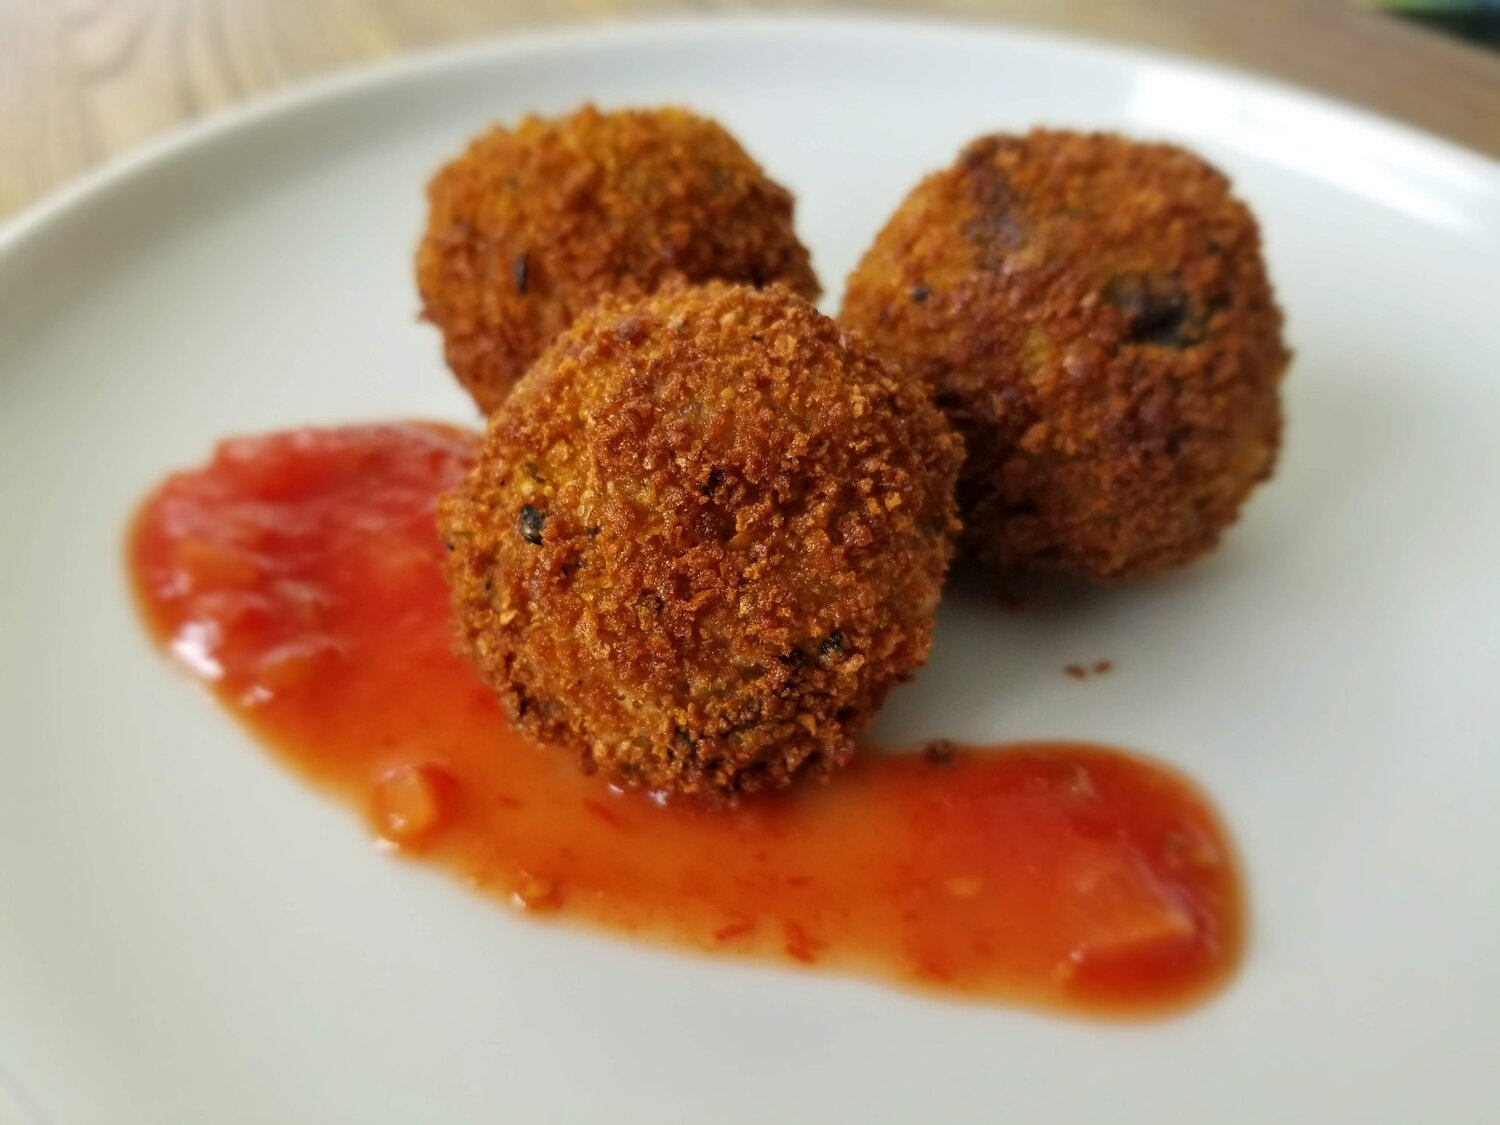 Fried balls of rice stuffed with cheese. Need we say more?